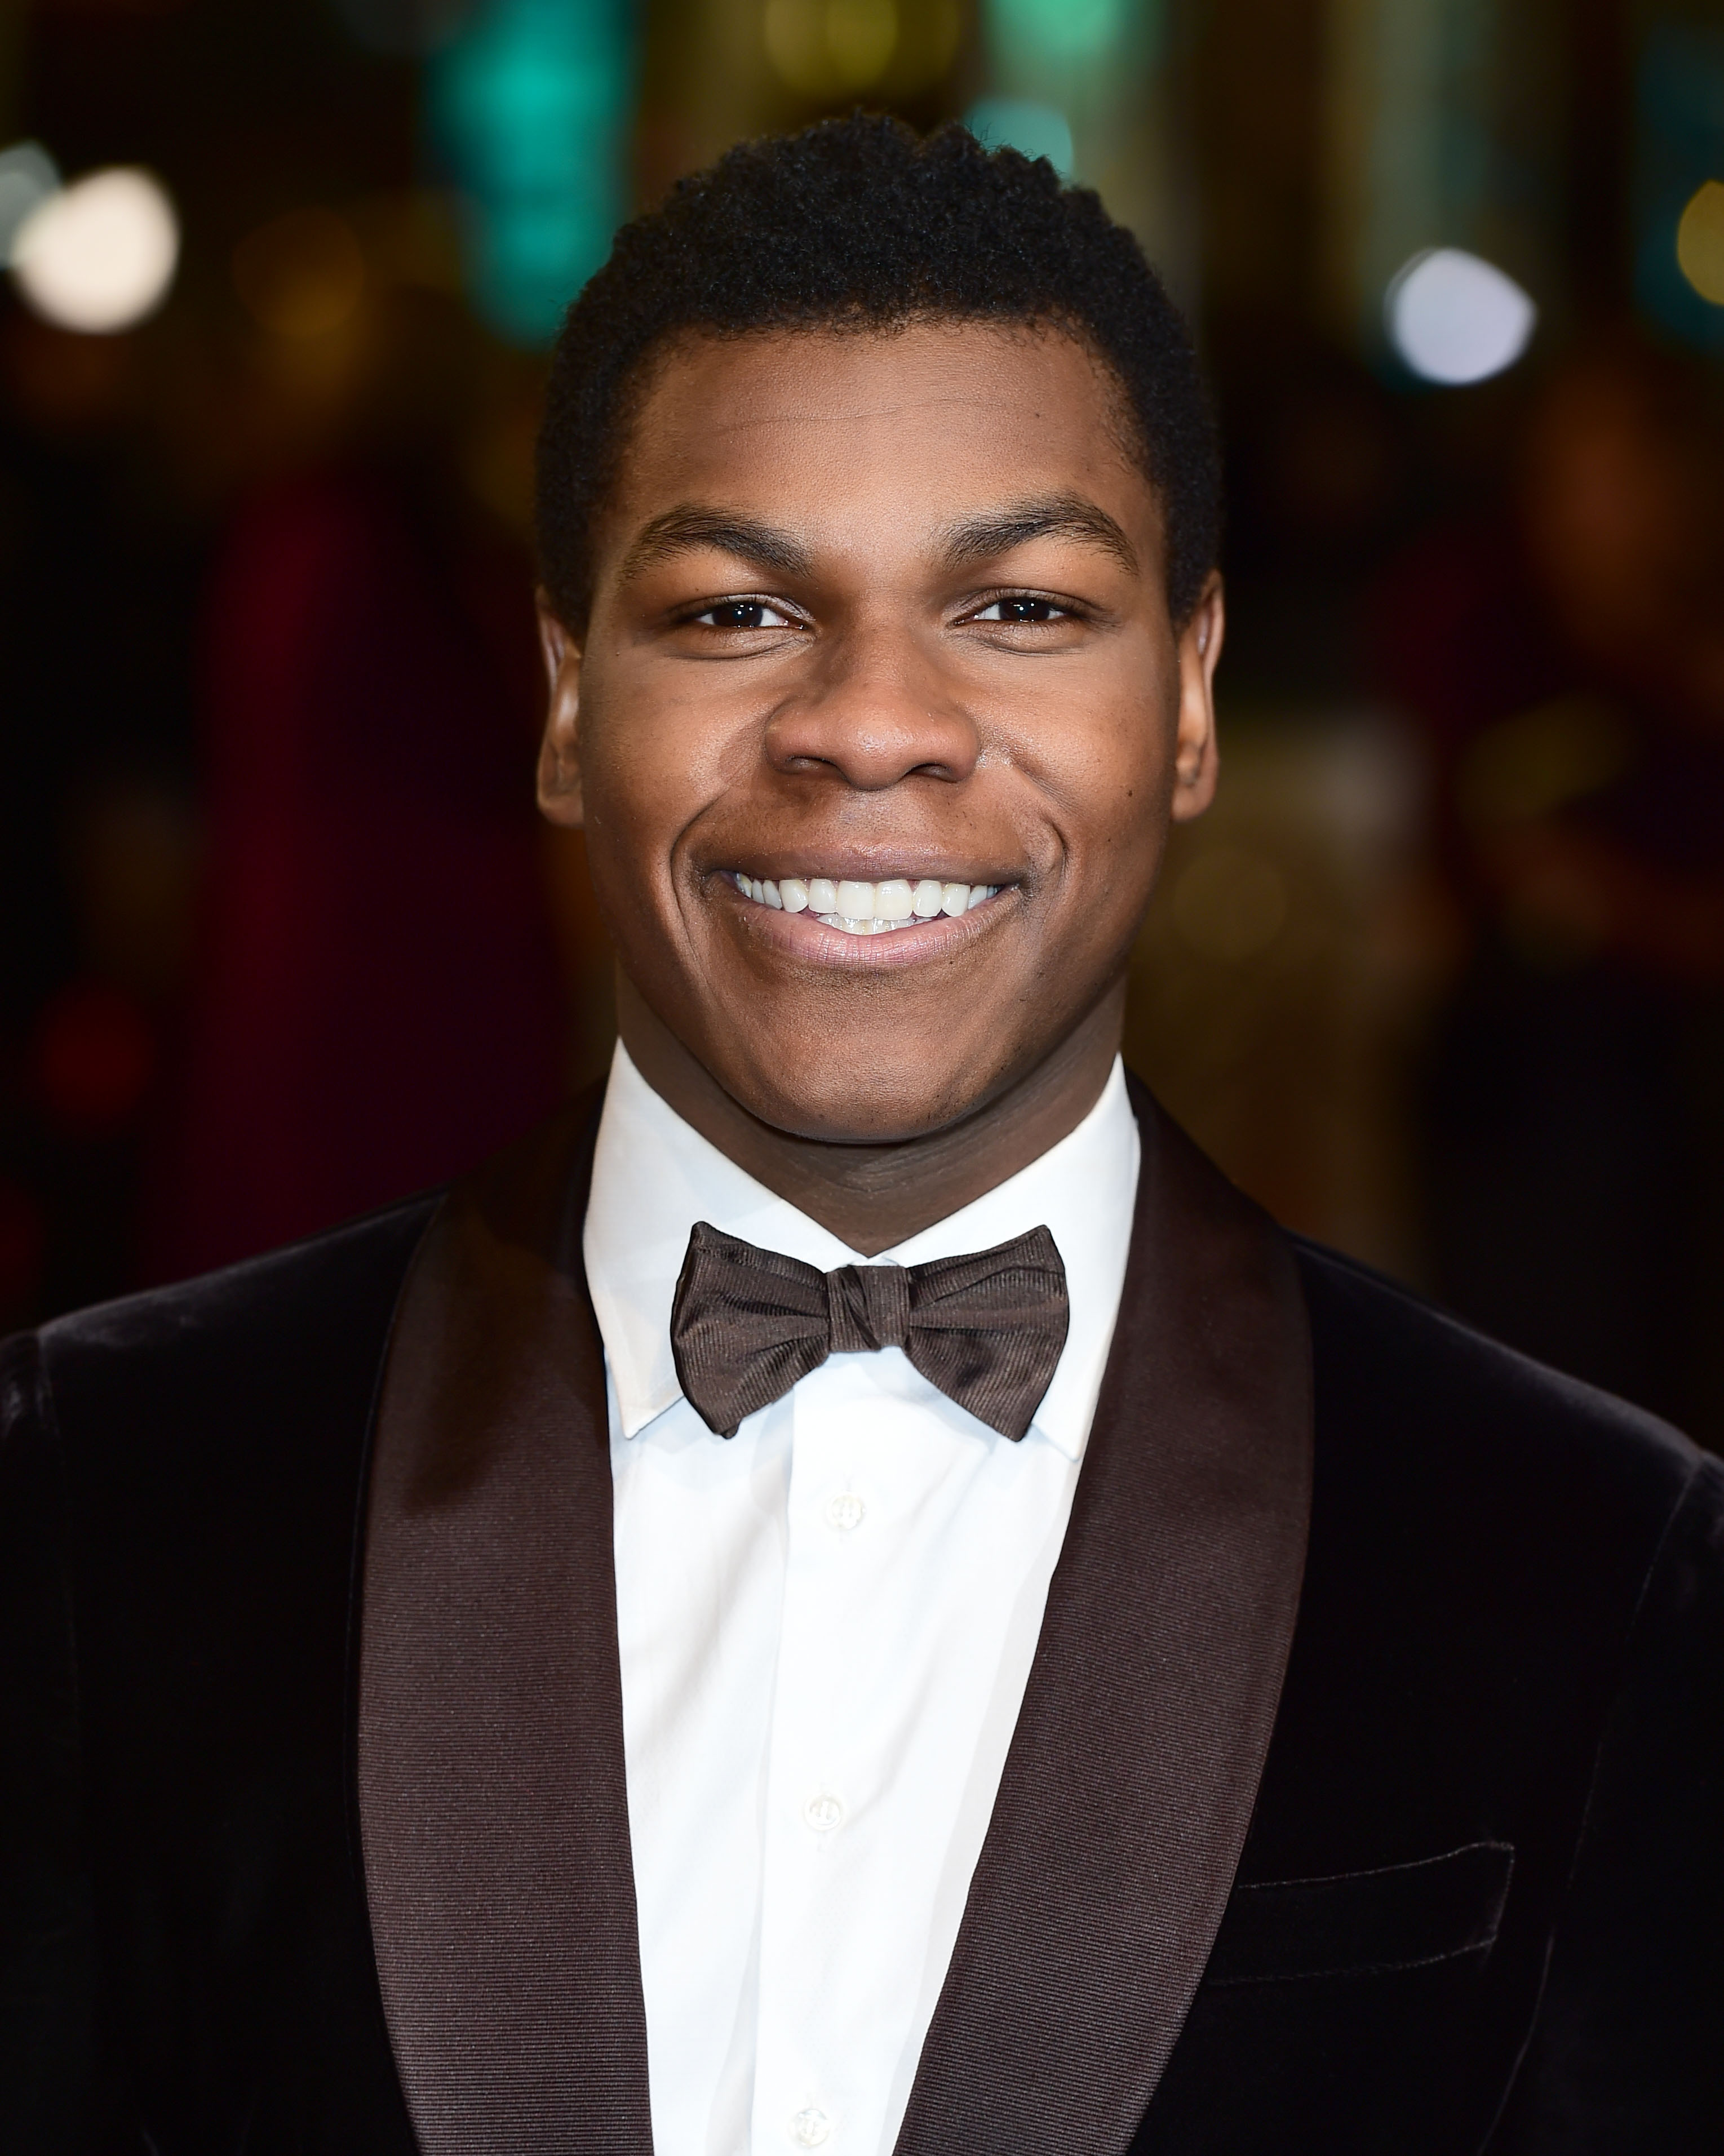 John Boyega revealed that he found a much-coveted Pikachu when filming Star Wars: Episode VIII.